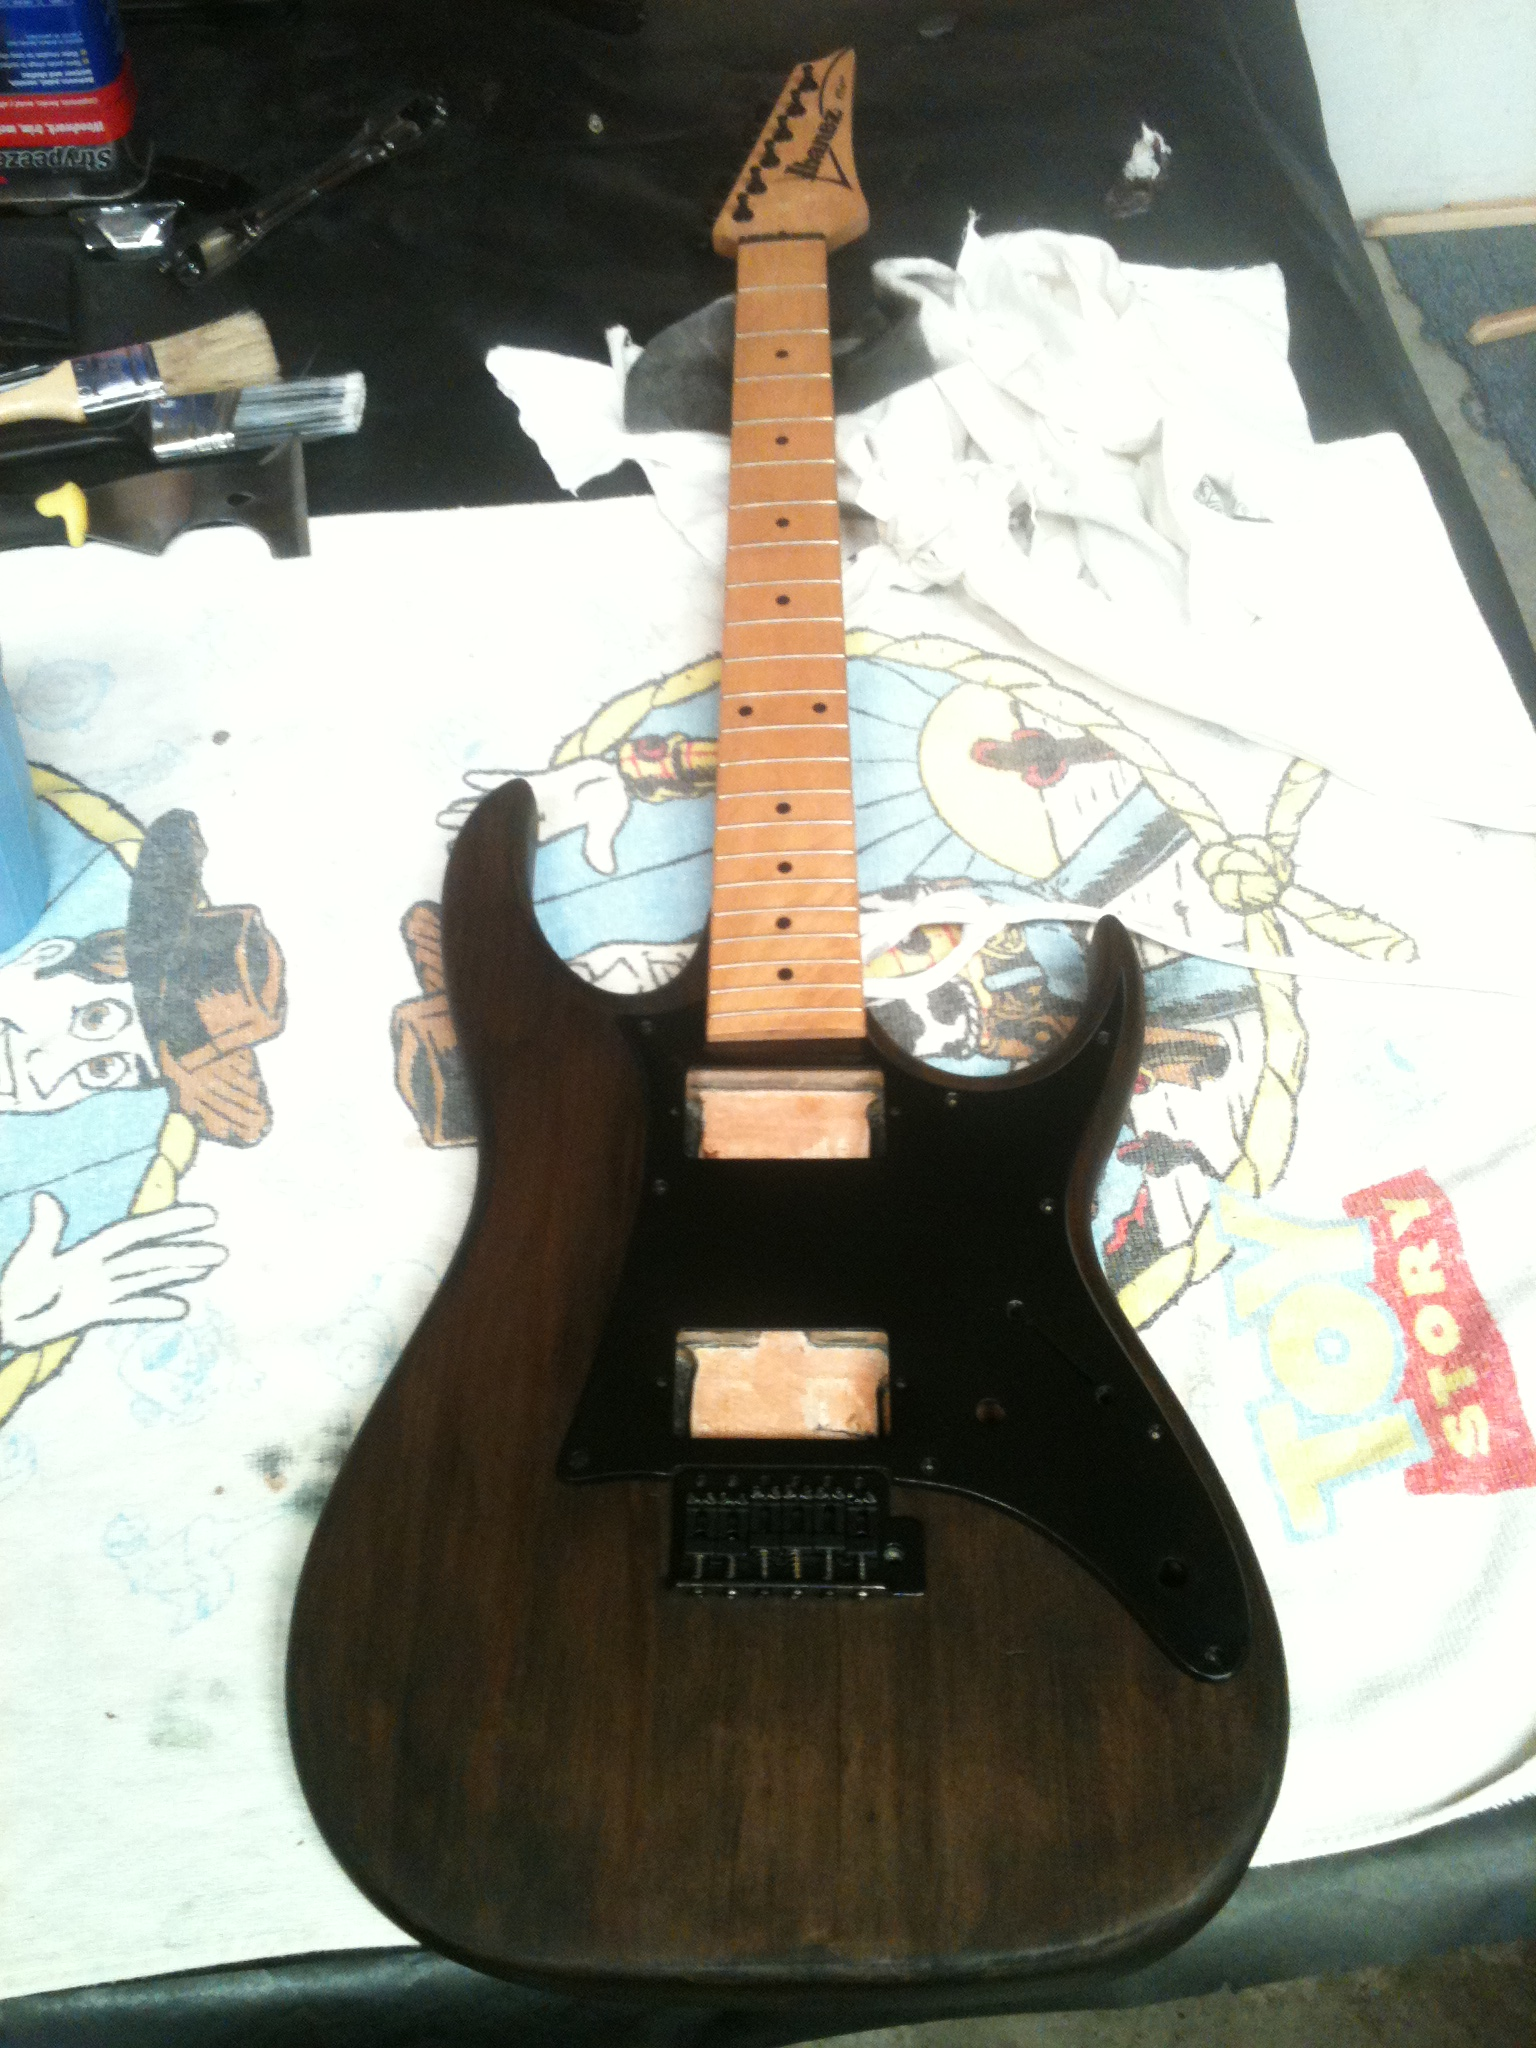 Picture of My Guitar That I Stripped, Sanded, and Stained